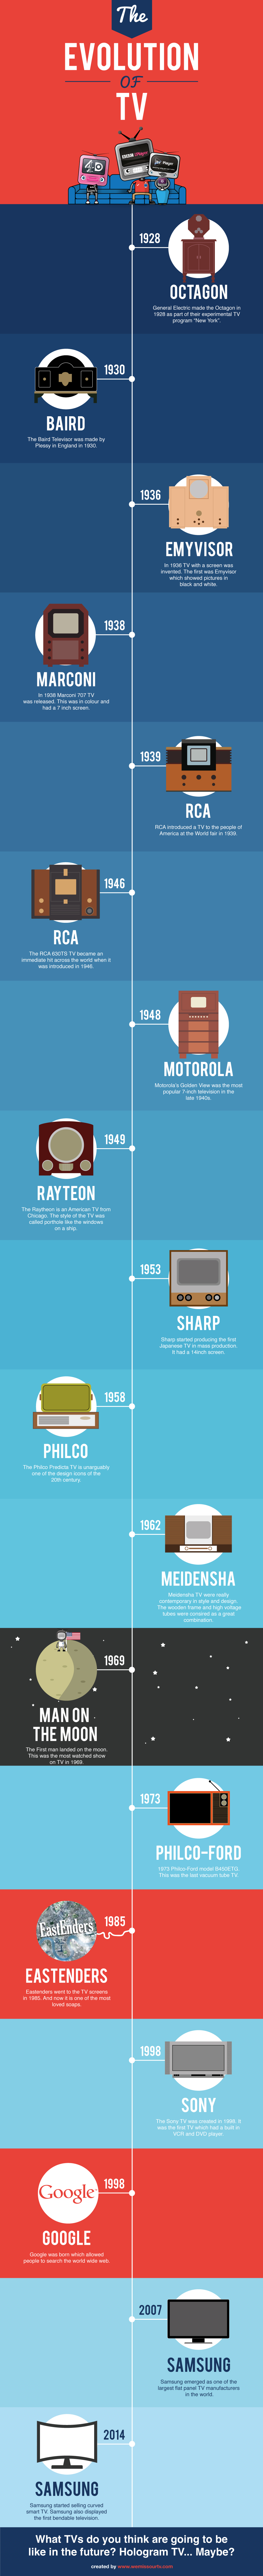 The Evolution of TV